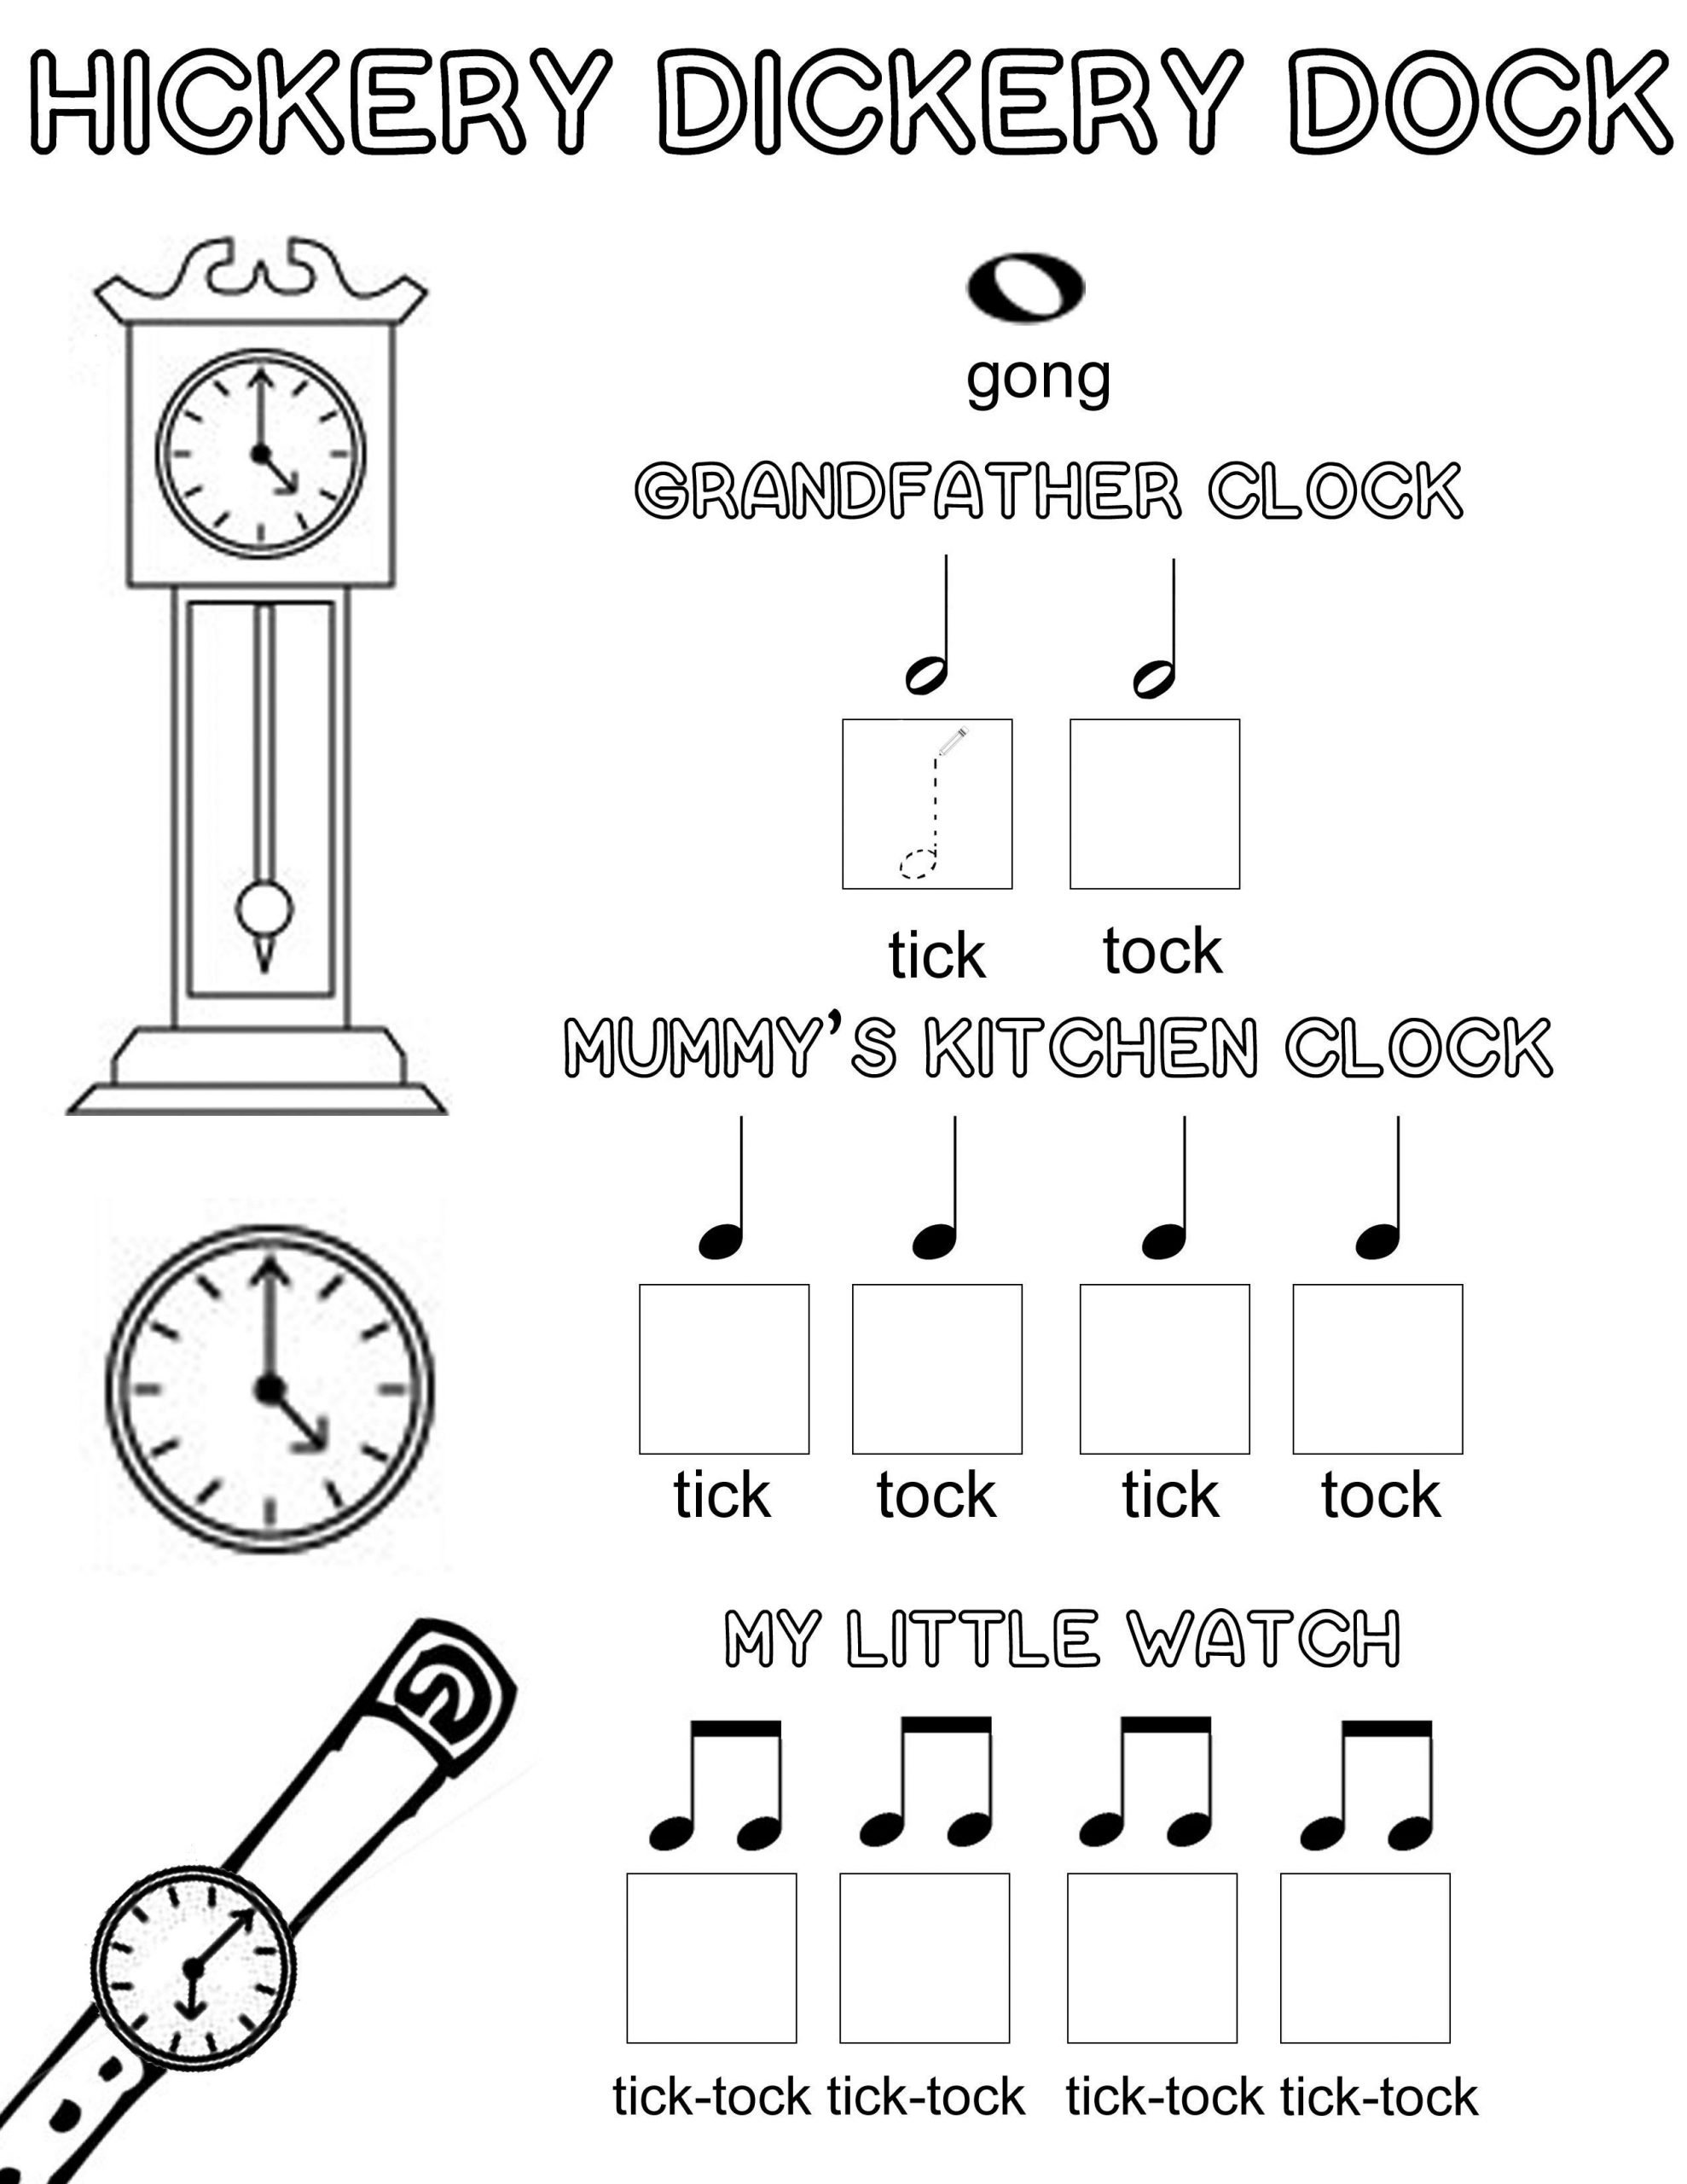 Music theory Worksheet for Kids Free Music theory Printable & Colouring Activity